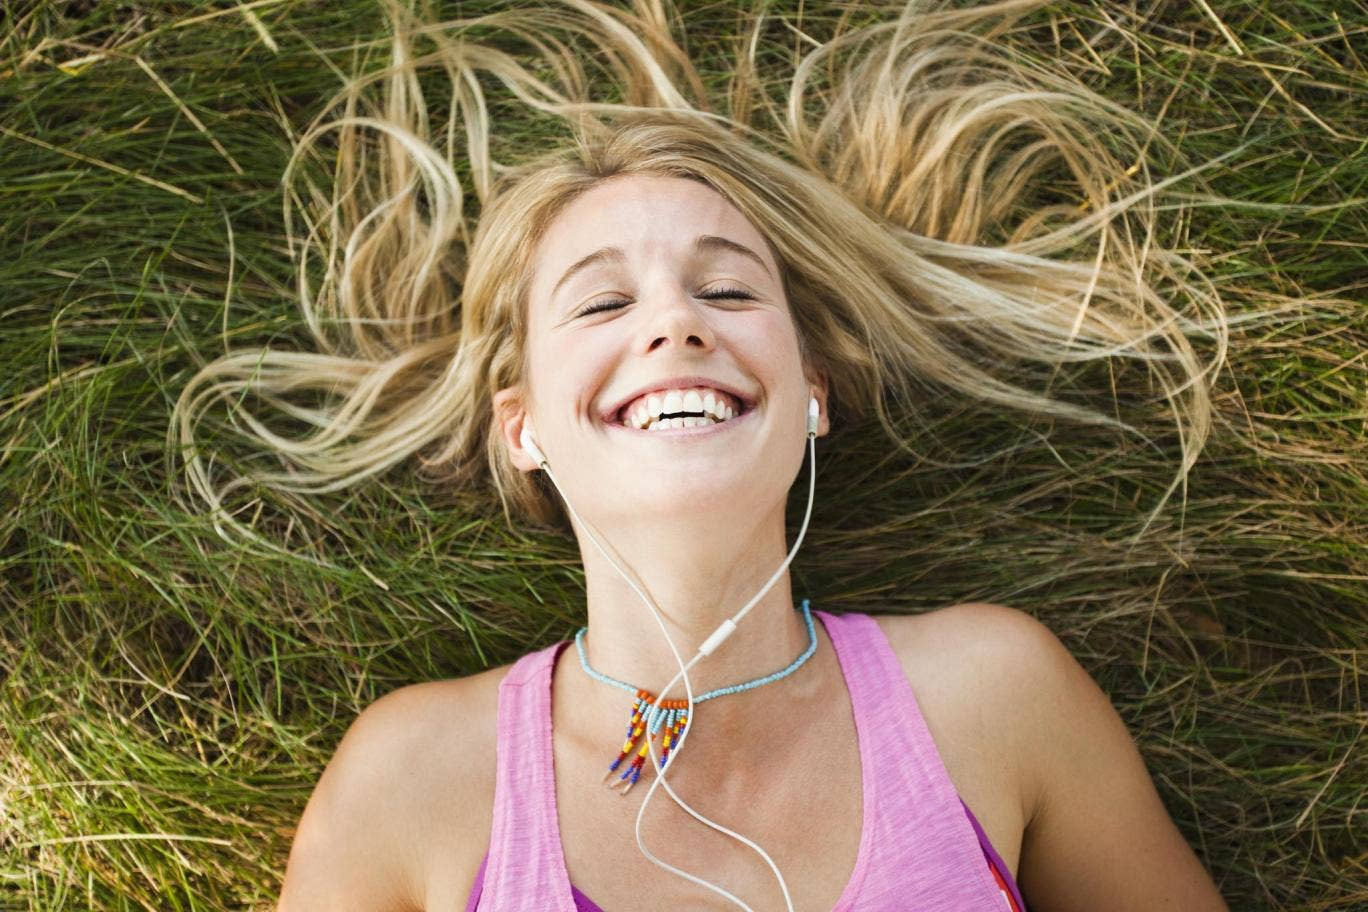 Can music make you happy?